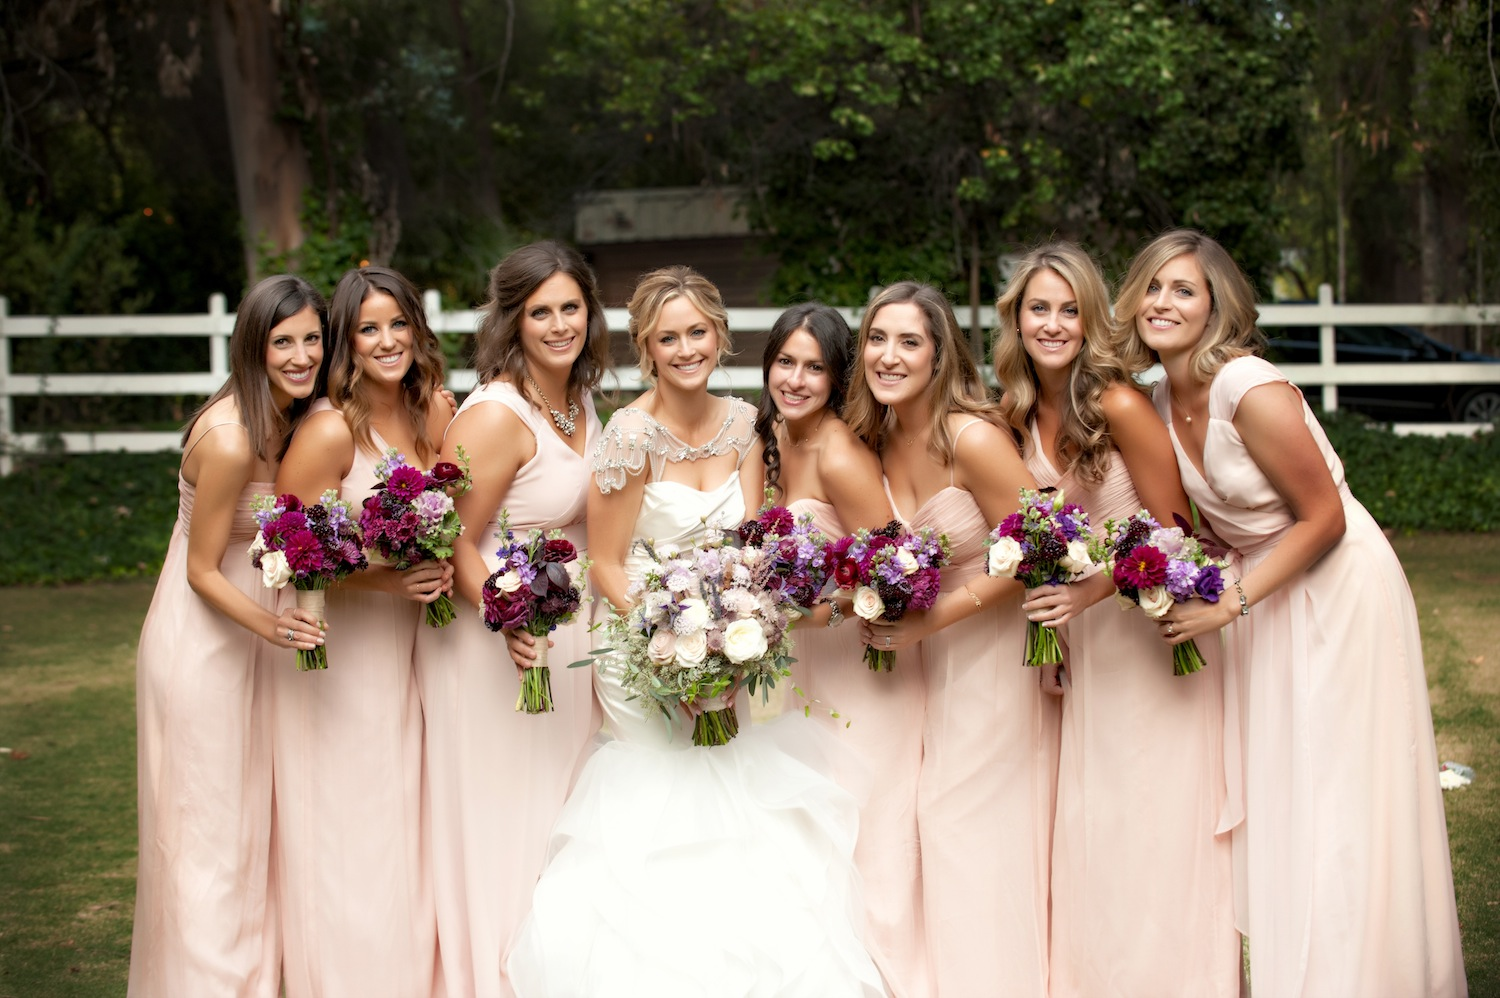 Bridesmaids in pink bridesmaid dresses